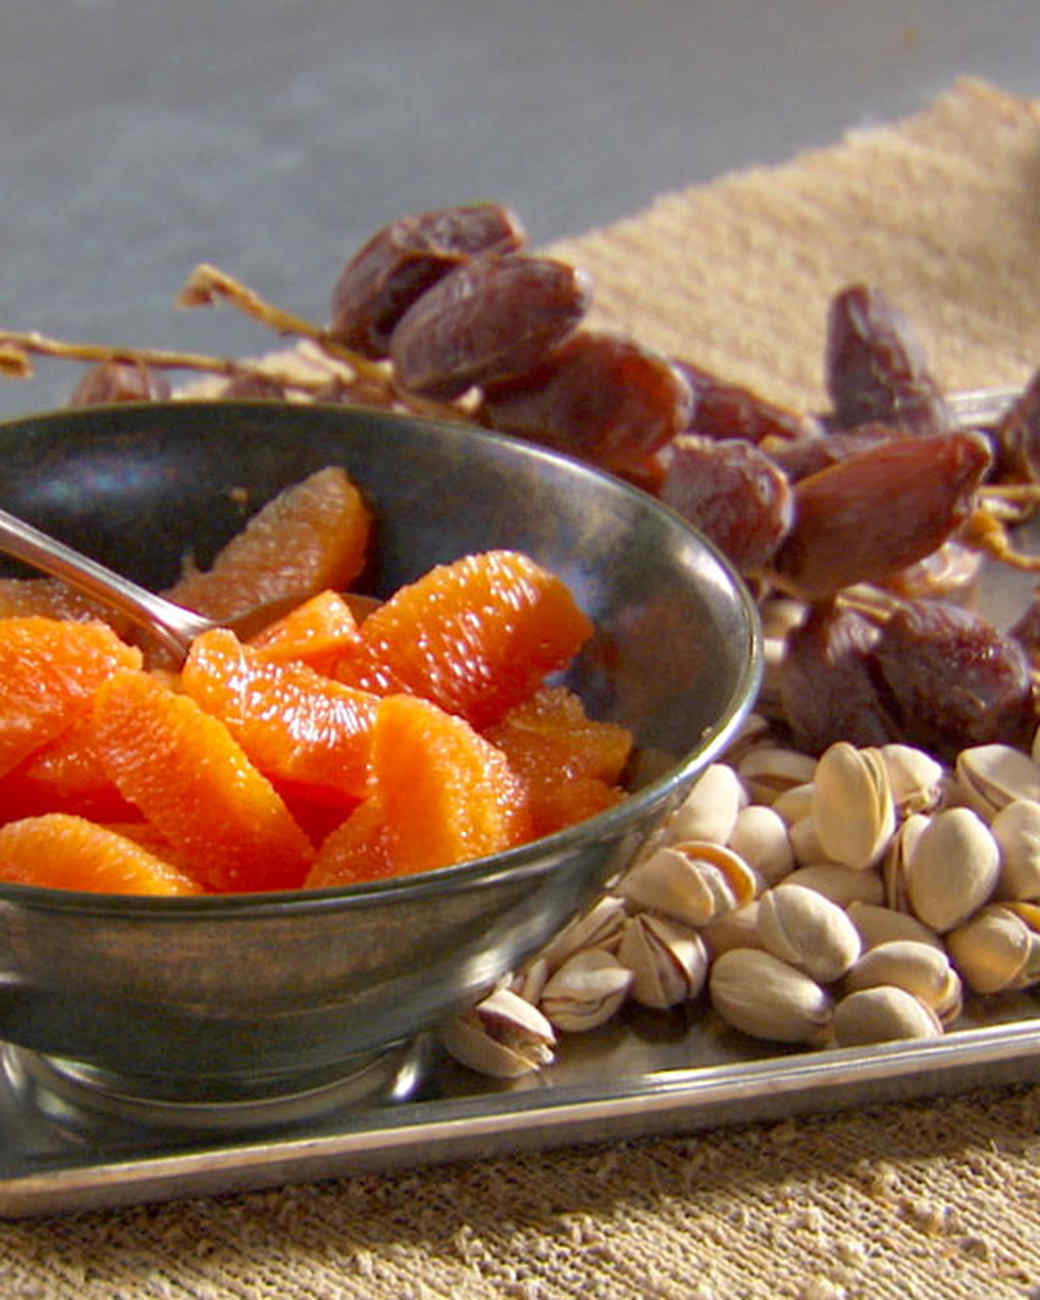 Macerated Oranges with Dates and Pistachios